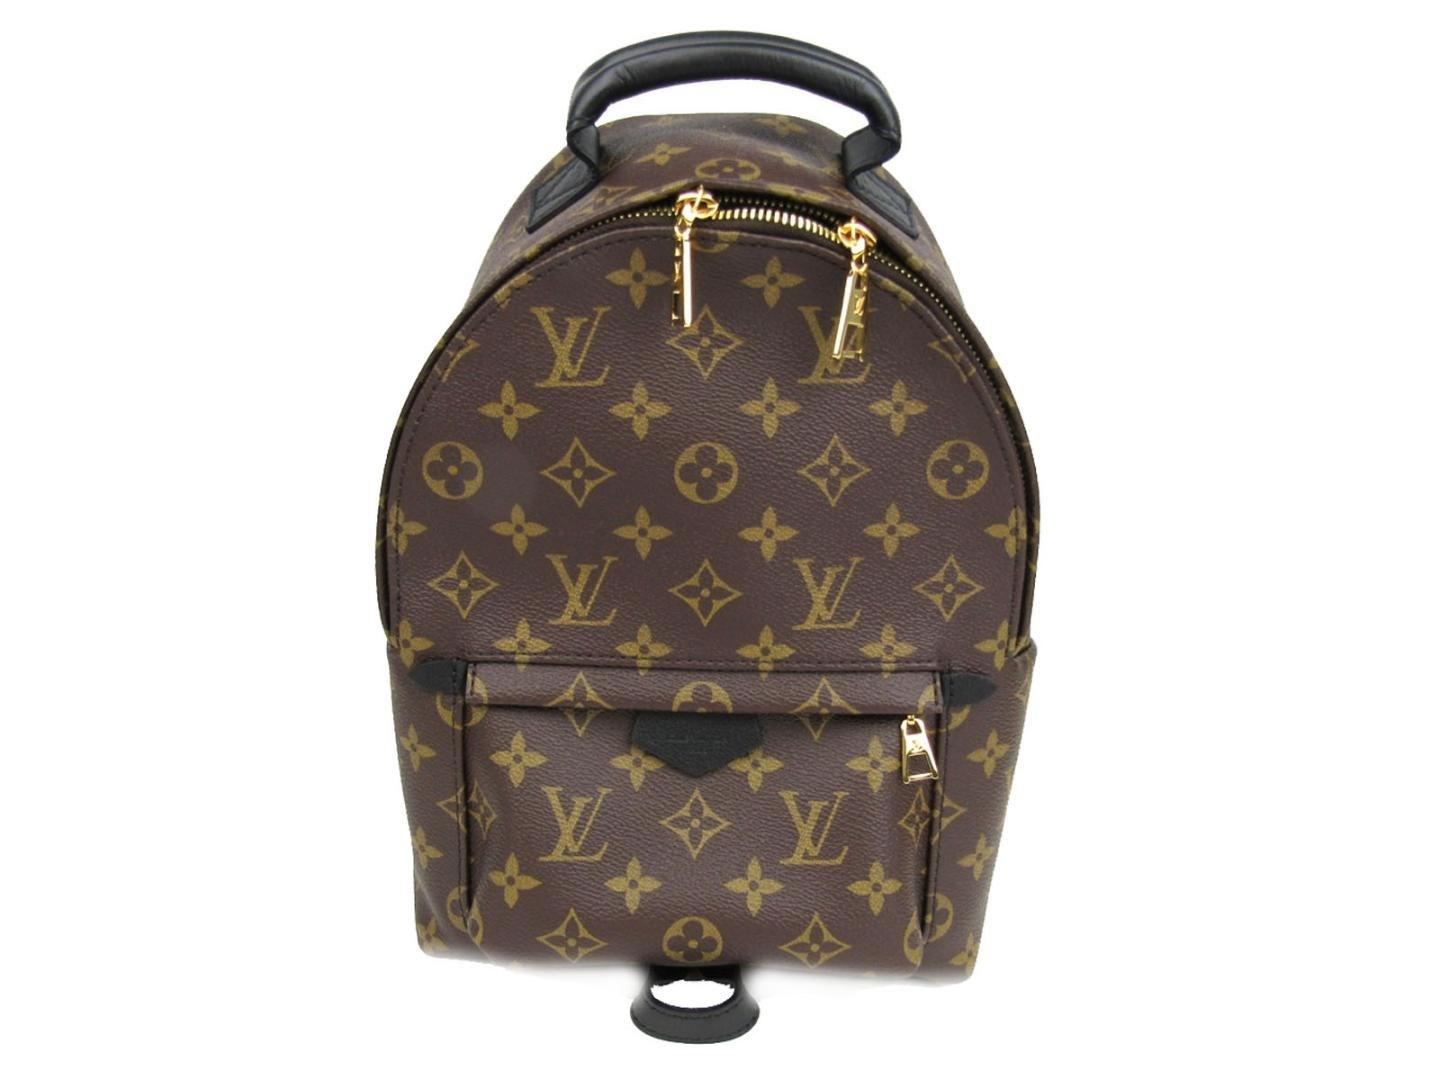 33446f28dbf5 Lyst - Louis Vuitton Palm Springs Backpack Pm Rucksack Backpack ...